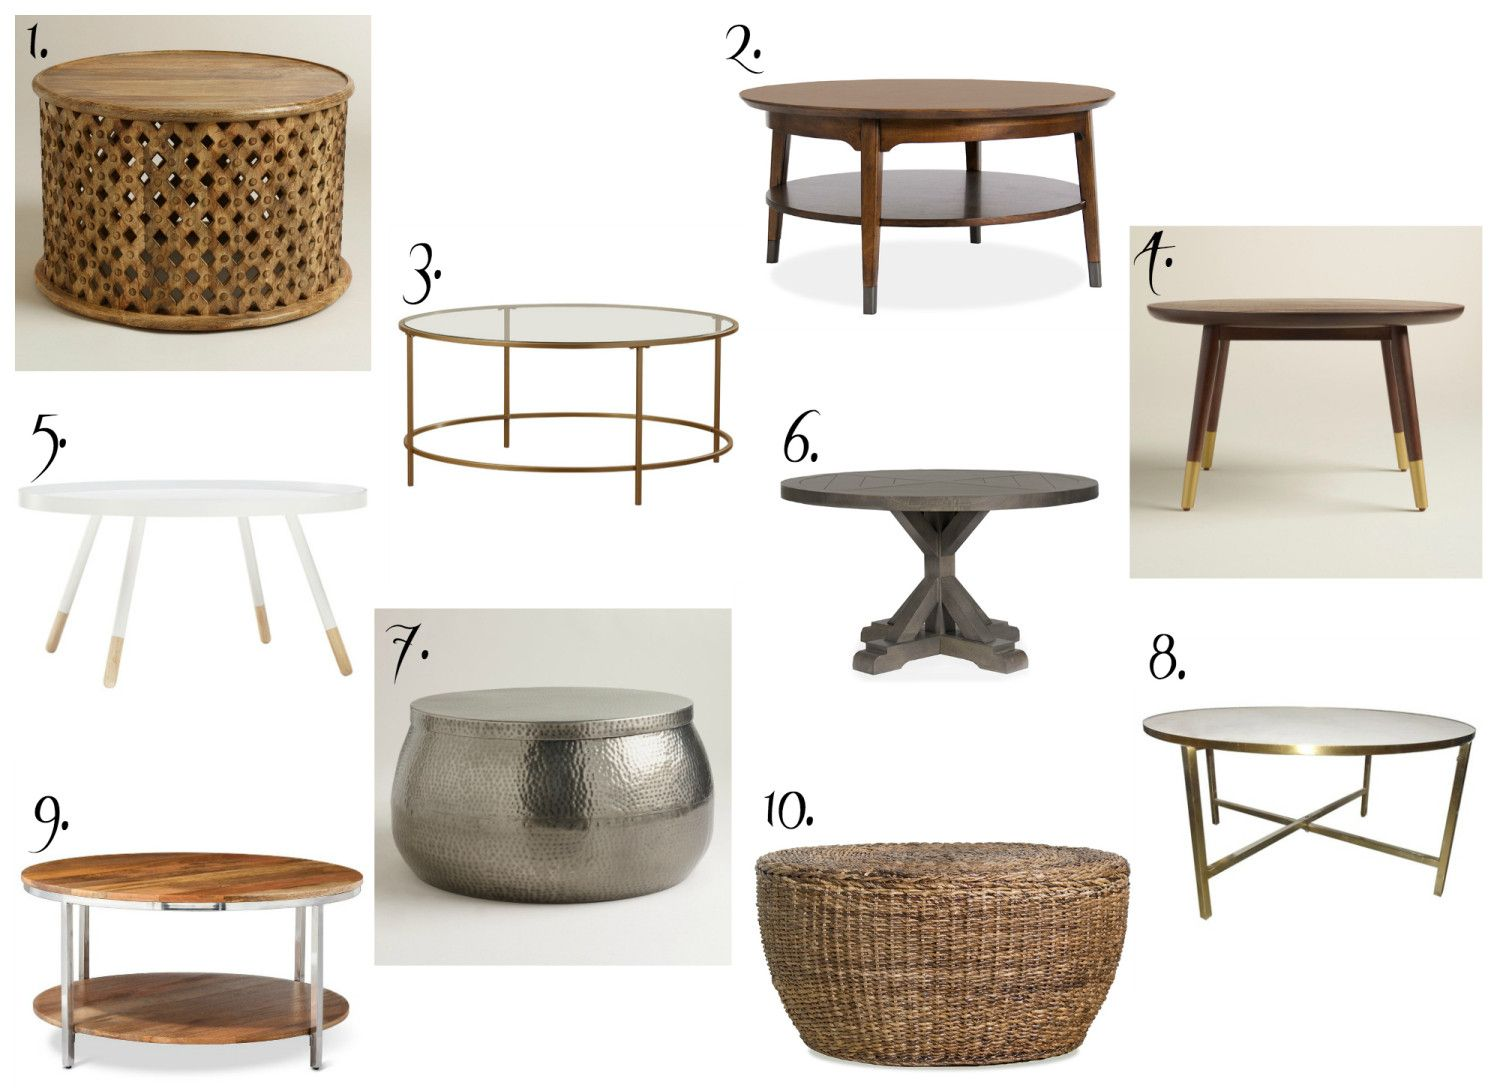 2019 Woven Round Coffee Table Cool Rustic Furniture Check More At Http